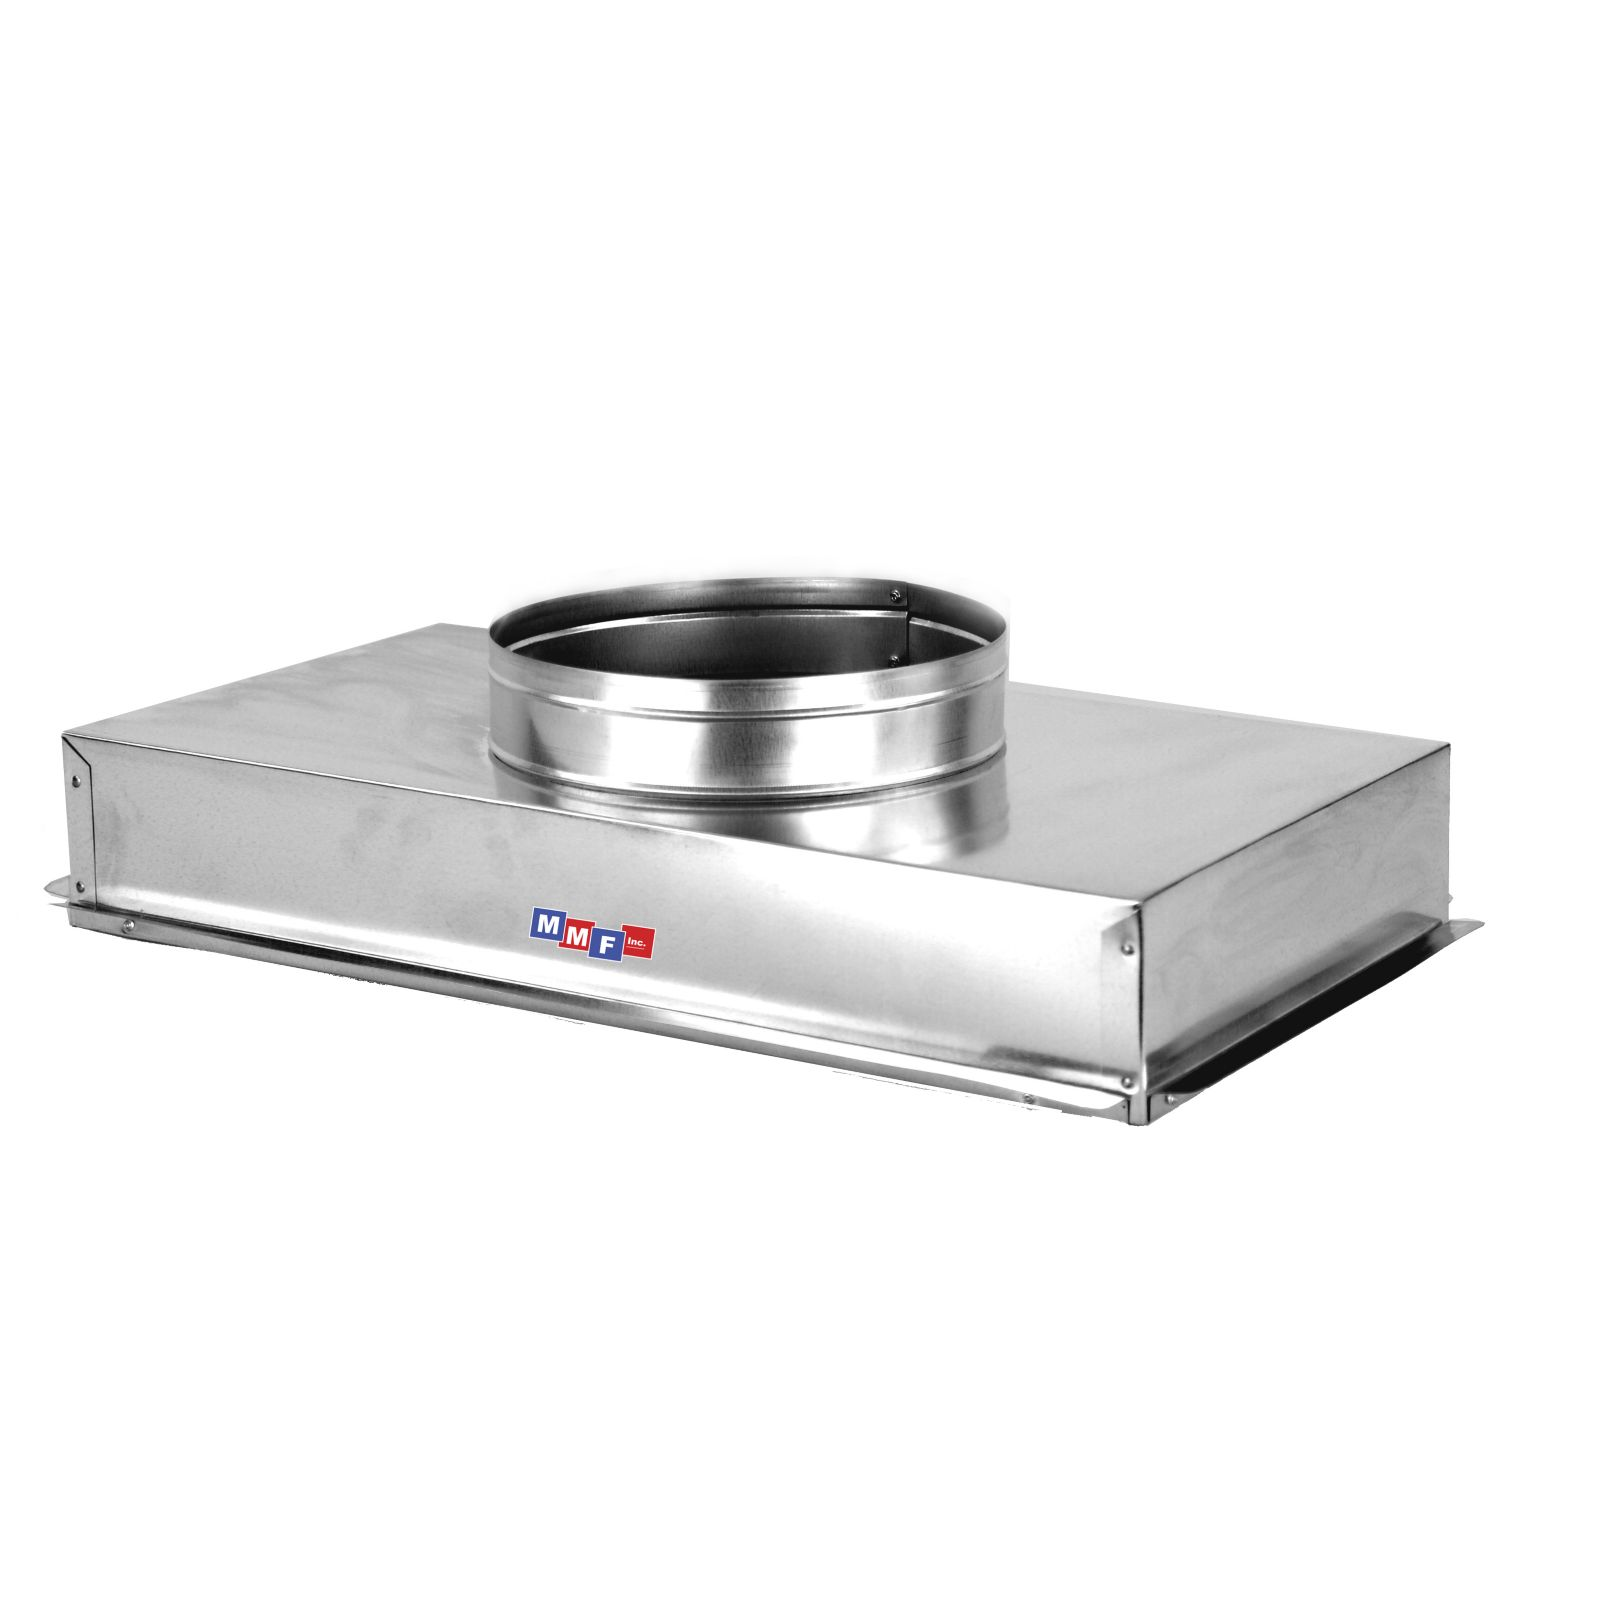 "Modular Metal ACRH3020H - Return Air Can - 28 Ga - Uninsulated With Plaster Ground Flange 30 1/4"" X 20 1/4"" No Collar-6"" High"